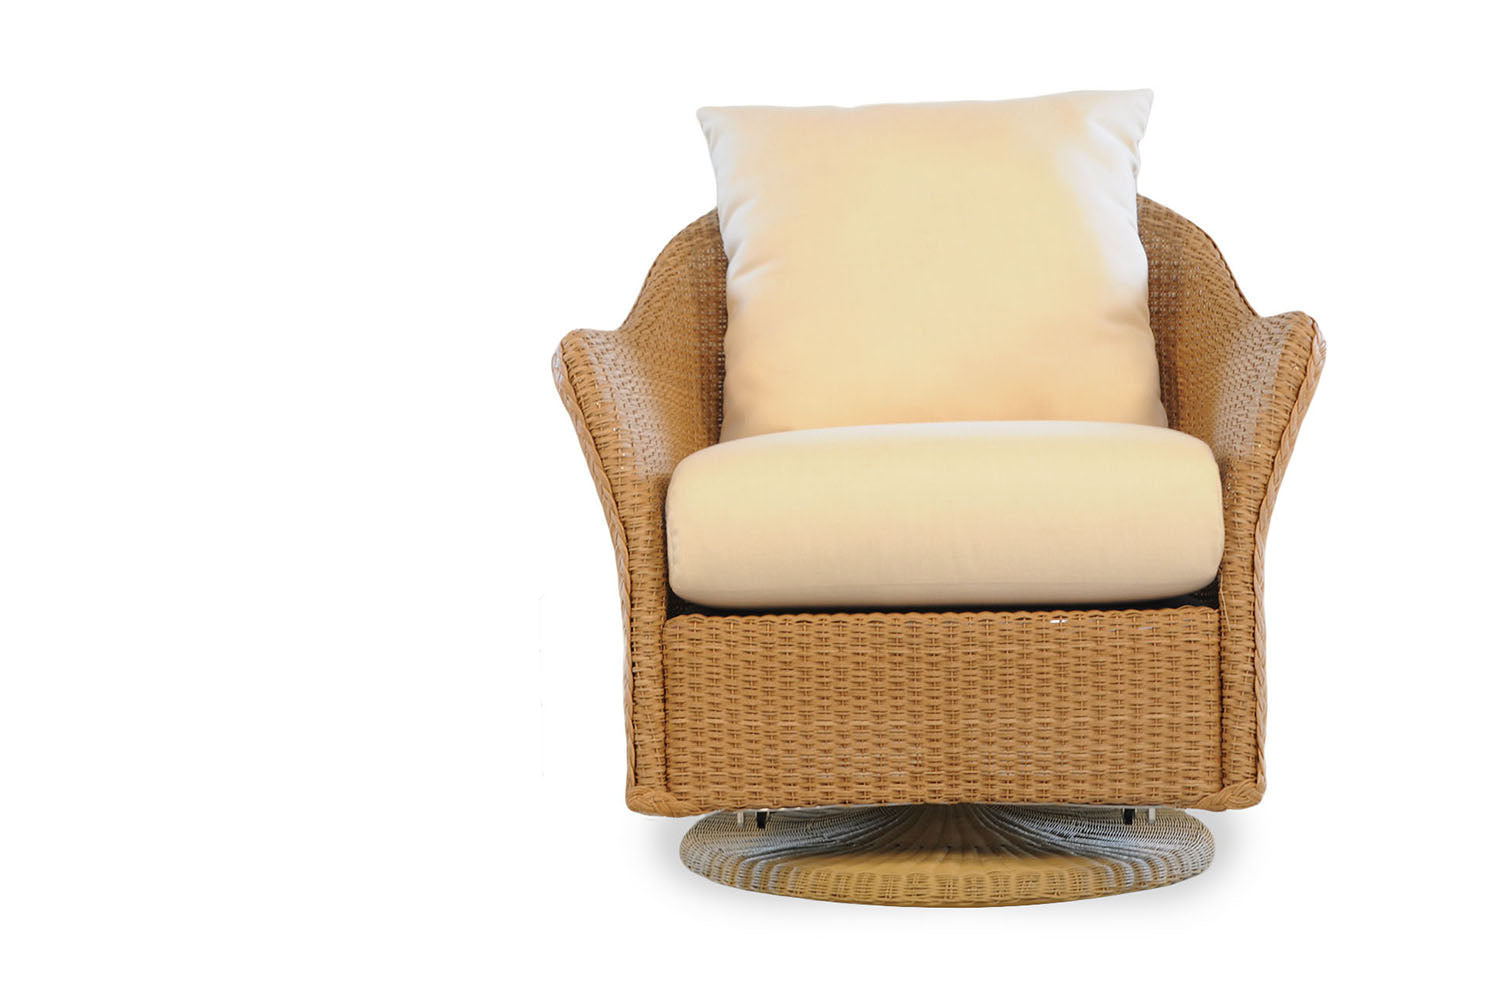 Lloyd Flanders Lloyd Flanders Weekend Retreat Swivel Glider Lounge Chair Swivel Glider Chair - Rattan Imports